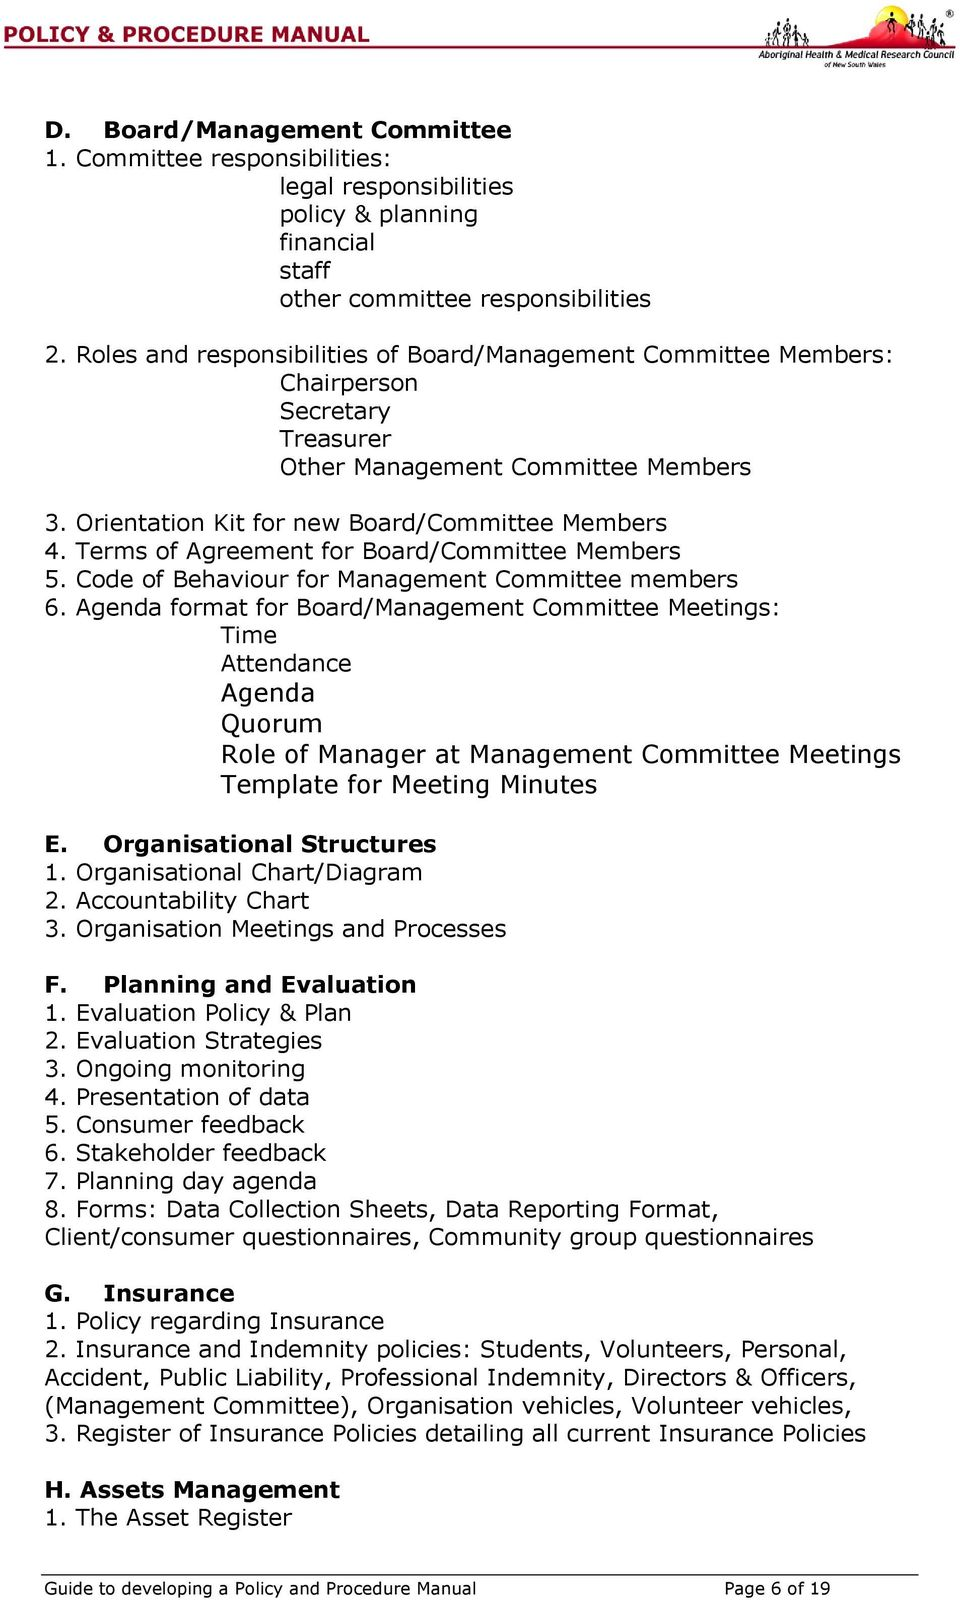 Guide to developing an organisational policy procedures manual pdf terms of agreement for boardcommittee members 5 code of behaviour for management committee maxwellsz